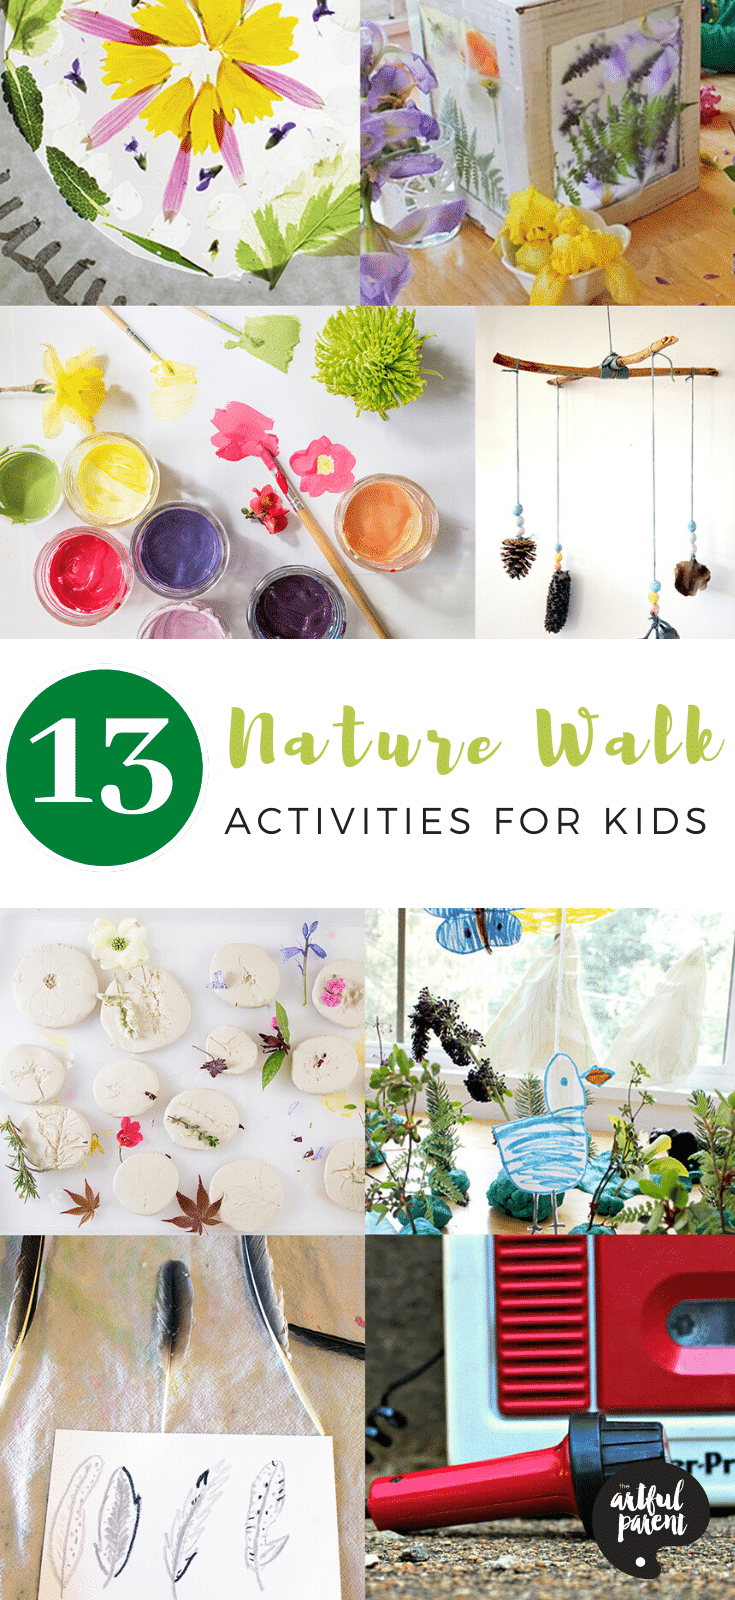 13 Nature Walk Activities for Kids_ Pinterest